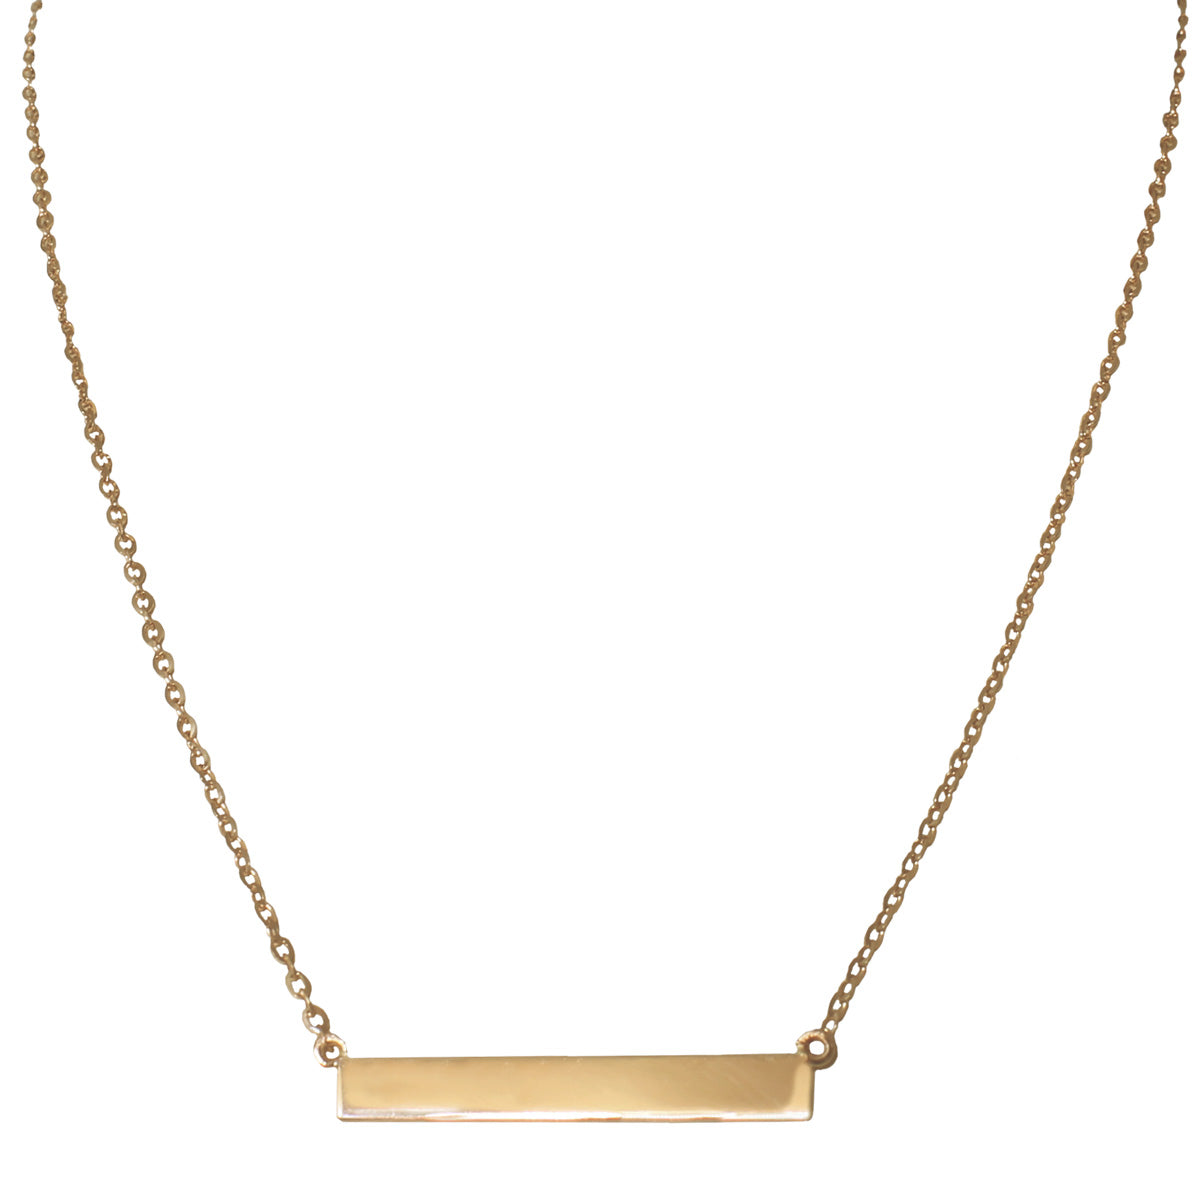 Yellow gold bar necklace by Jessica Jewellery.